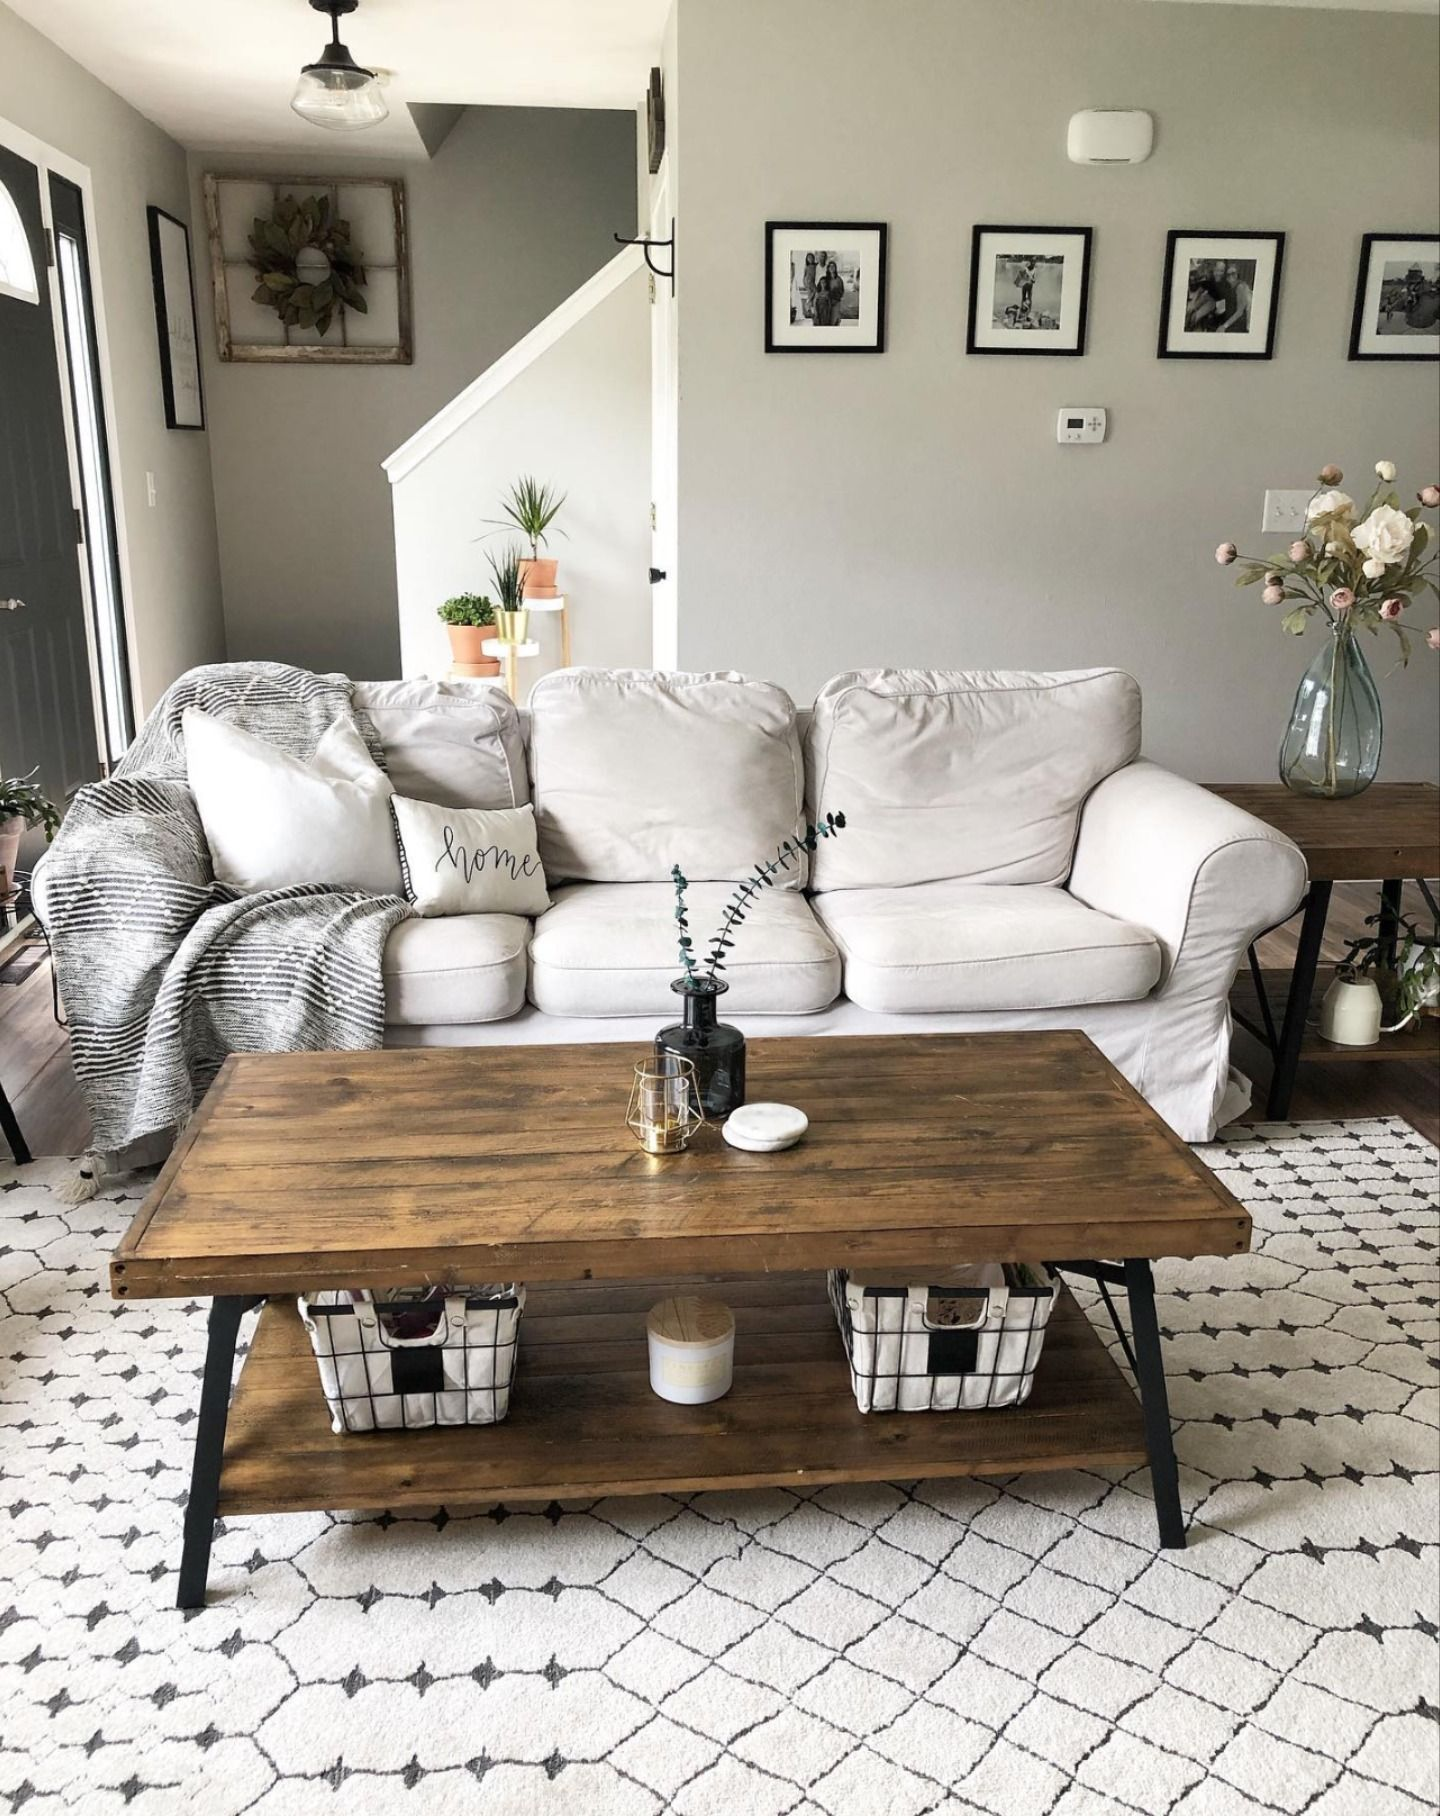 Chubbuck Area Rug In 2020 Rugs In Living Room Home Decor